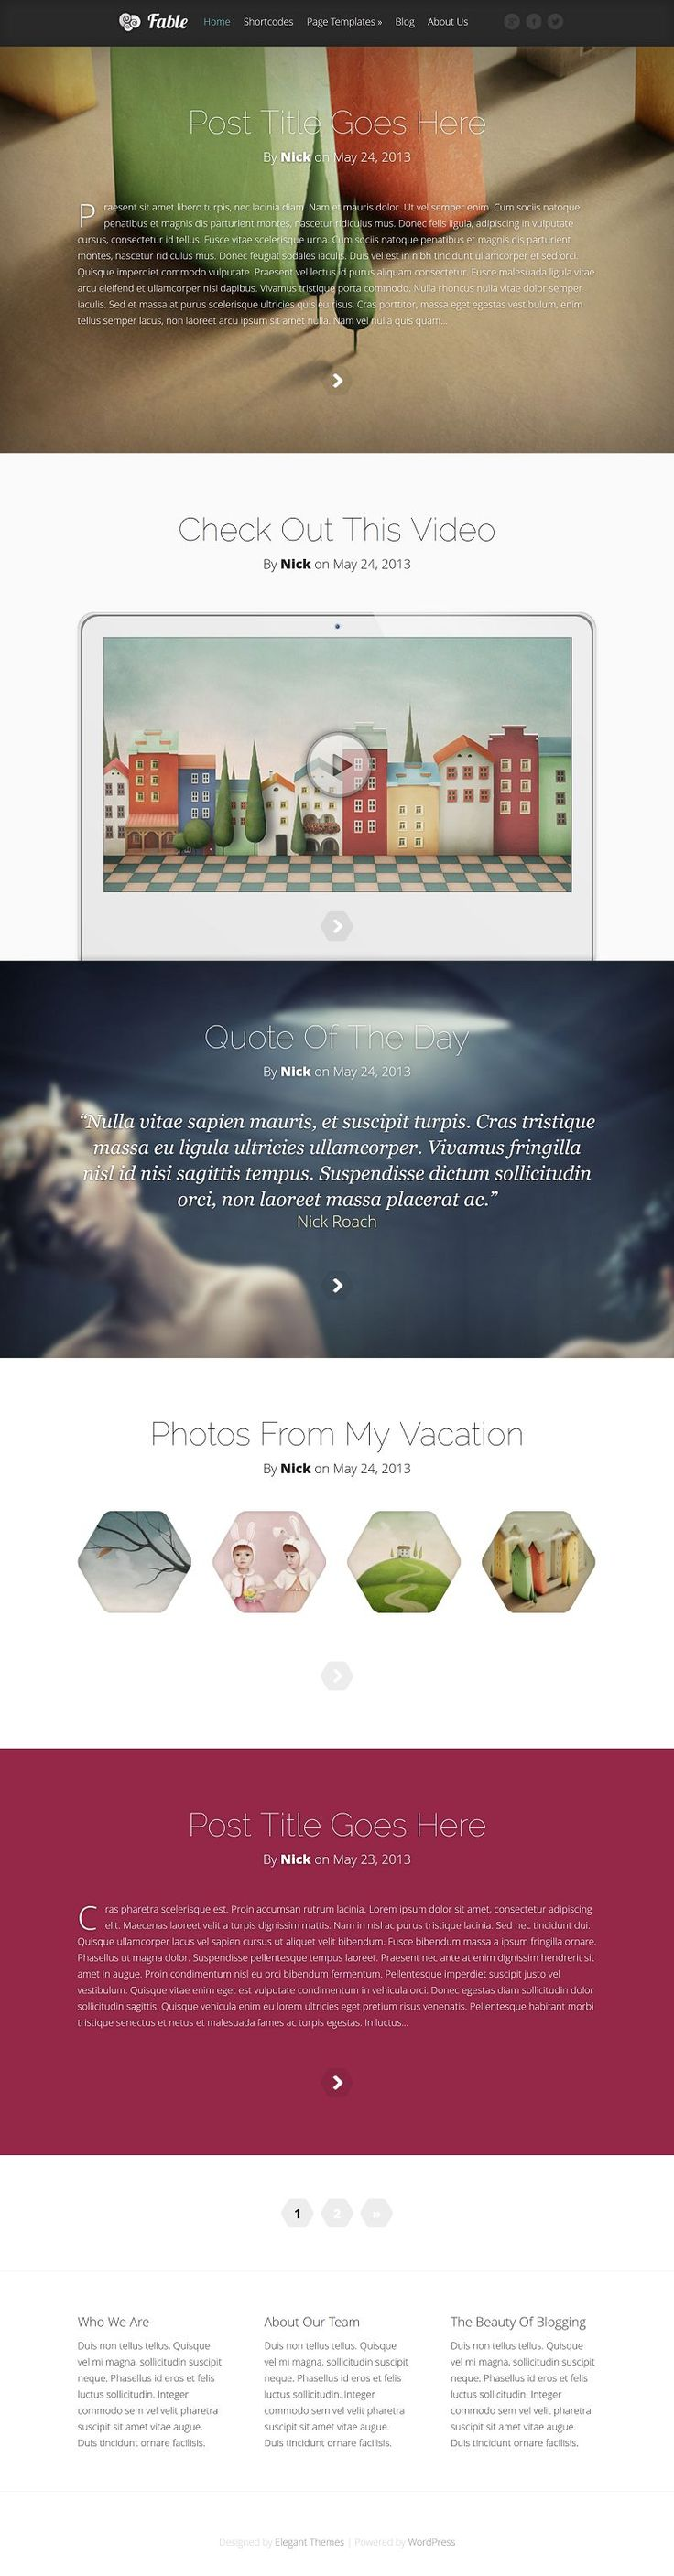 Fable is beautiful theme built for blogging. The theme tells a story by building a visual narrative through post variation.